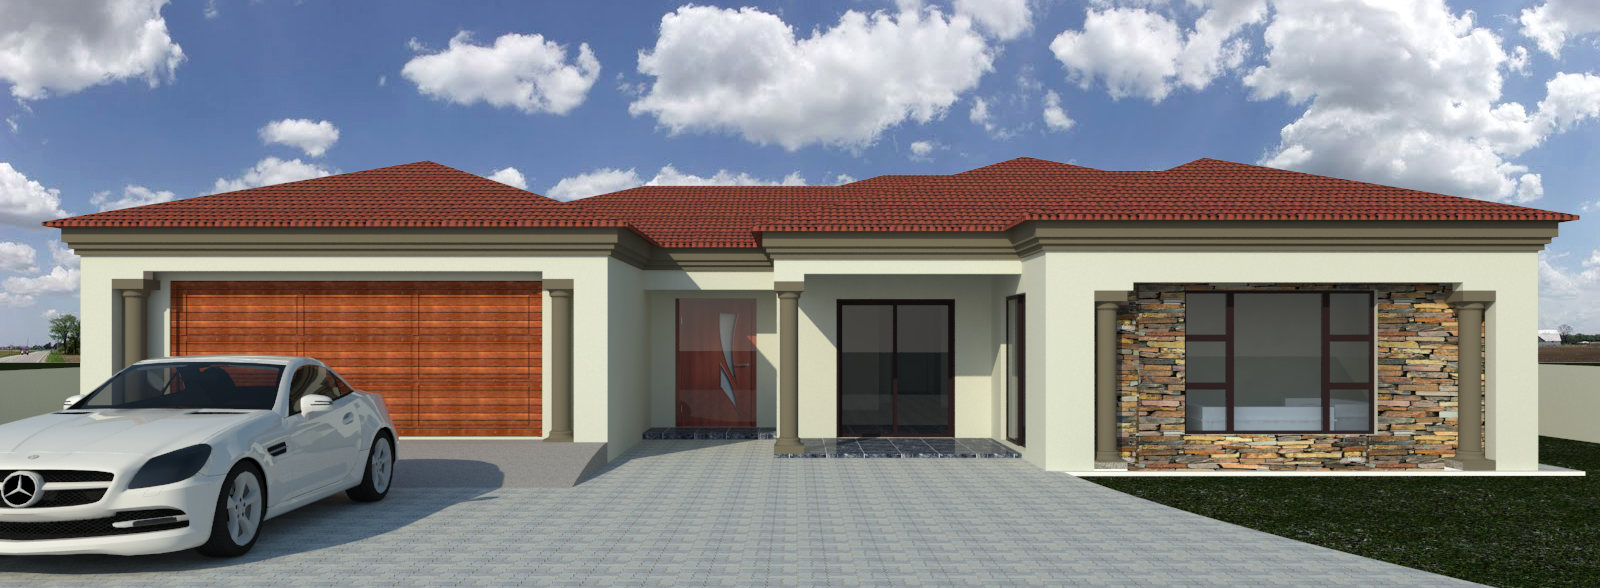 My house plans south africa my house plans most for My house design